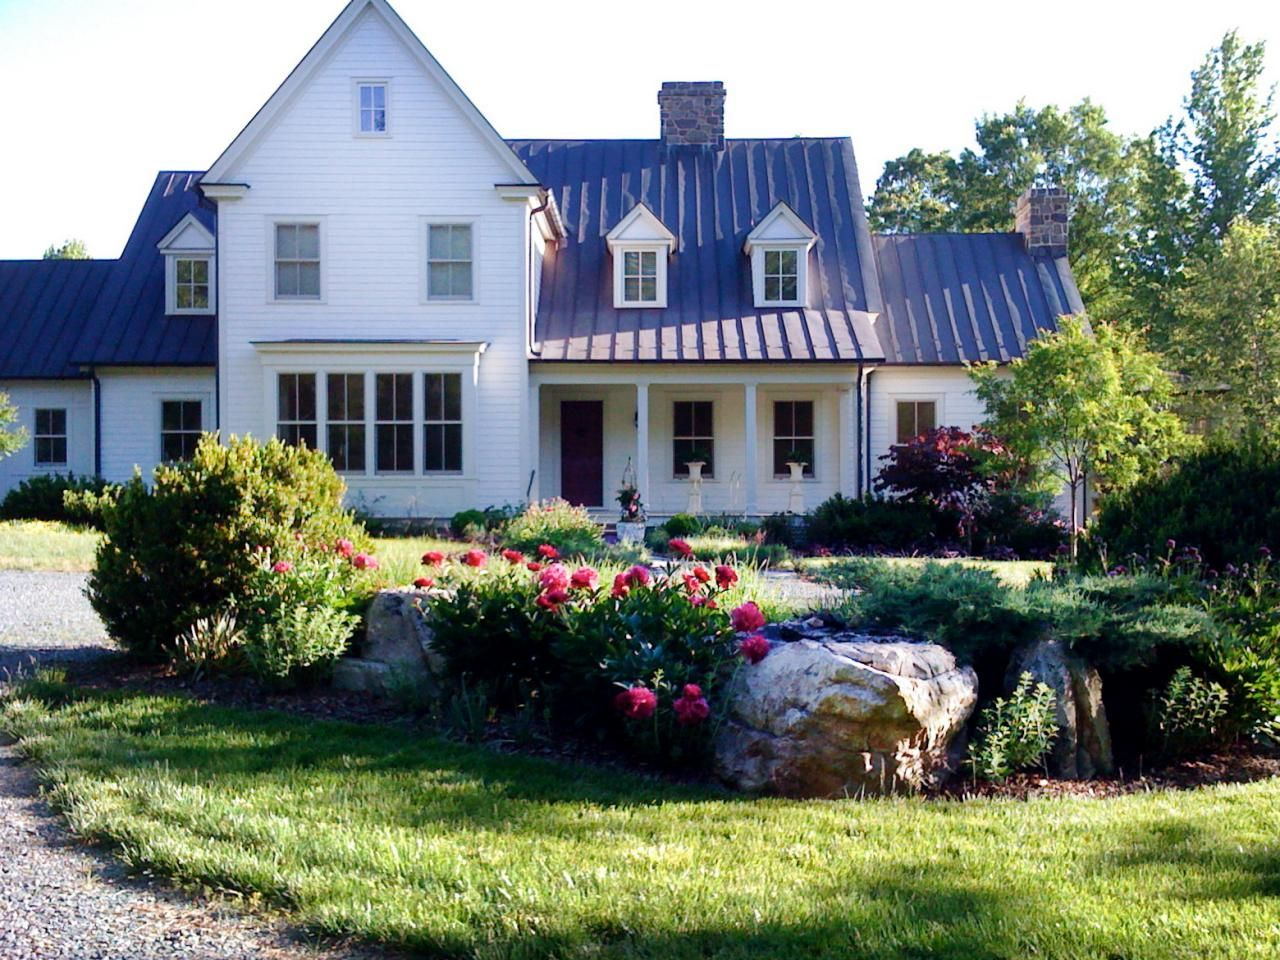 This Front Yard Of Updated Farmhouse Is Landscaped With Lush Grass Large Rocks And